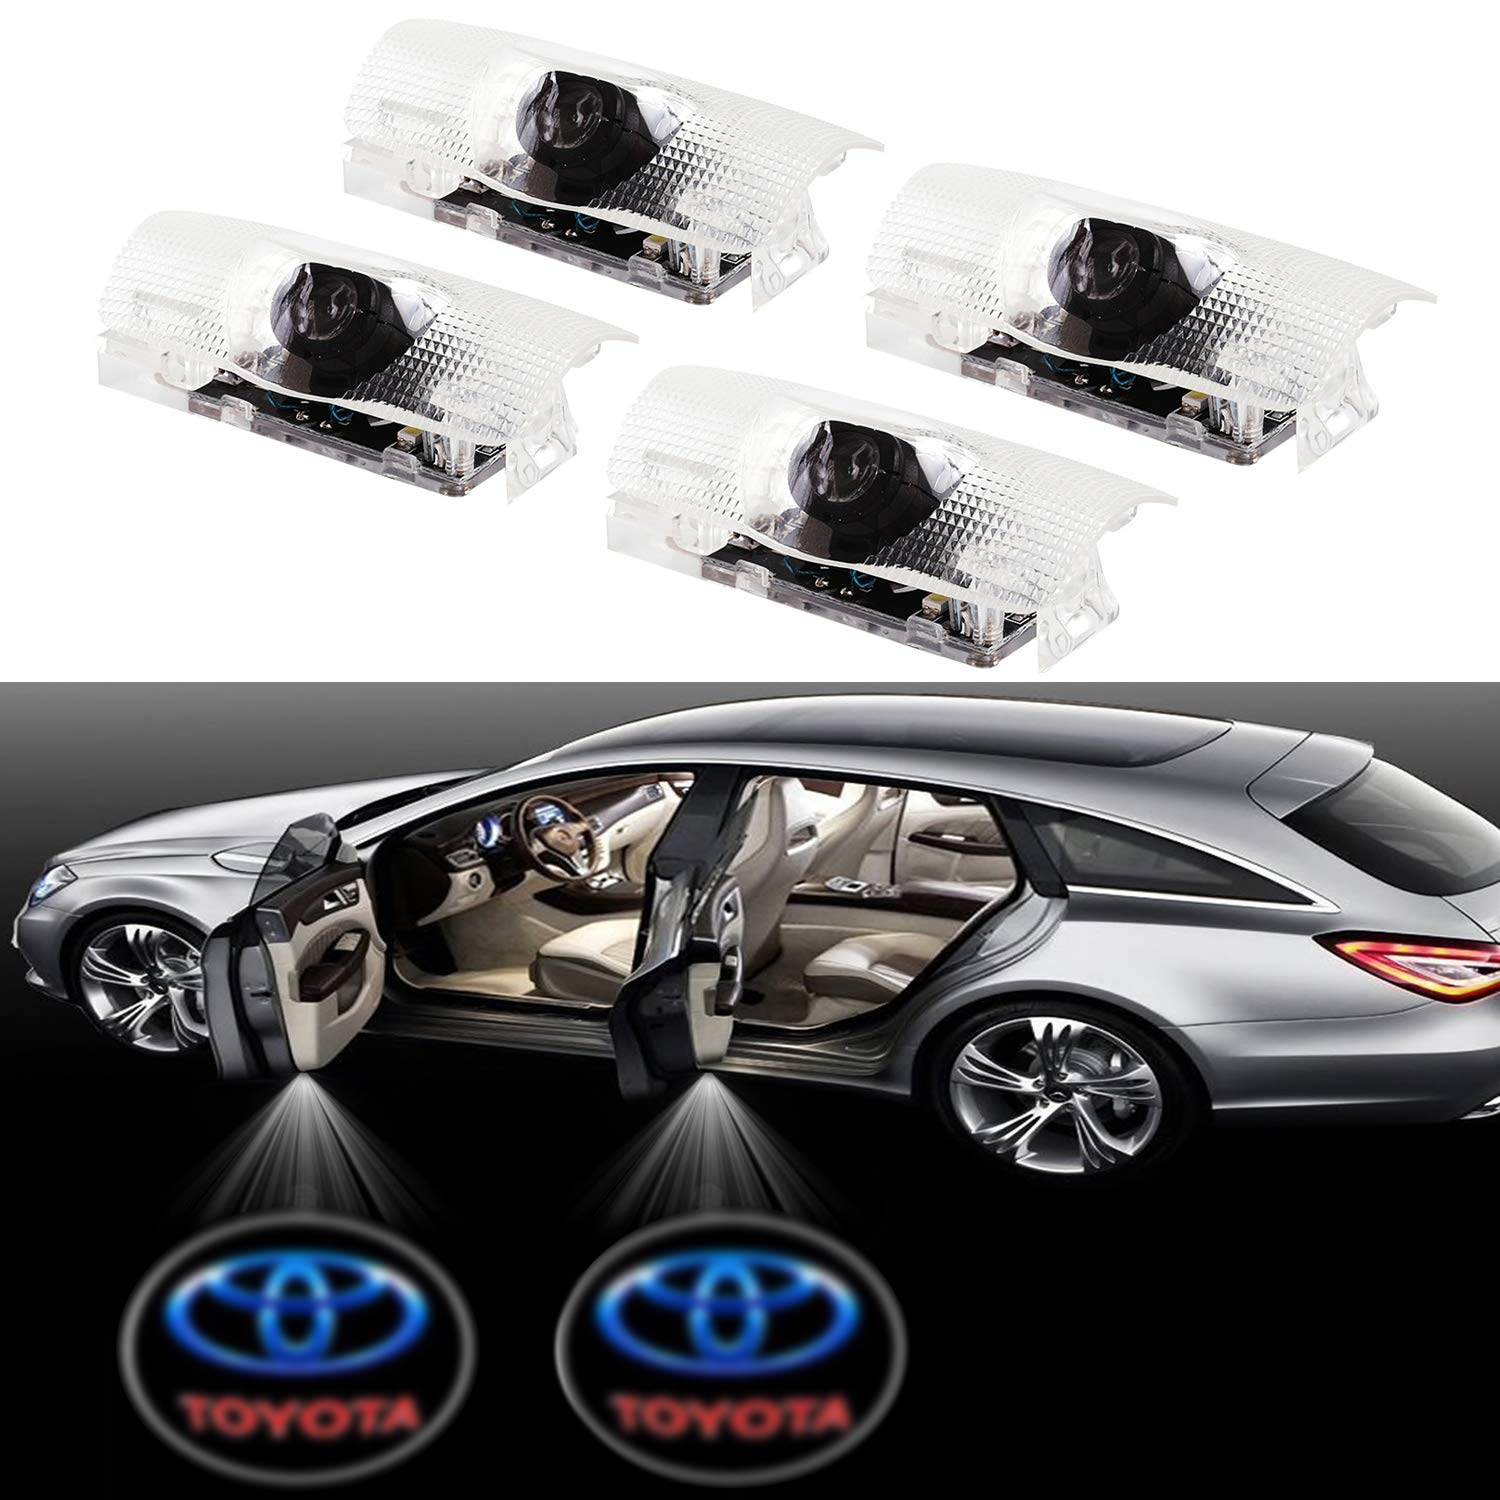 Eogifee Car LED Door Courtesy LED Laser Projector Welcome Lights Ghost Shadow Light for The Replacement of Mercedes-Benz E A B C ML Class w212 w166 w176 Series 2 Pack /